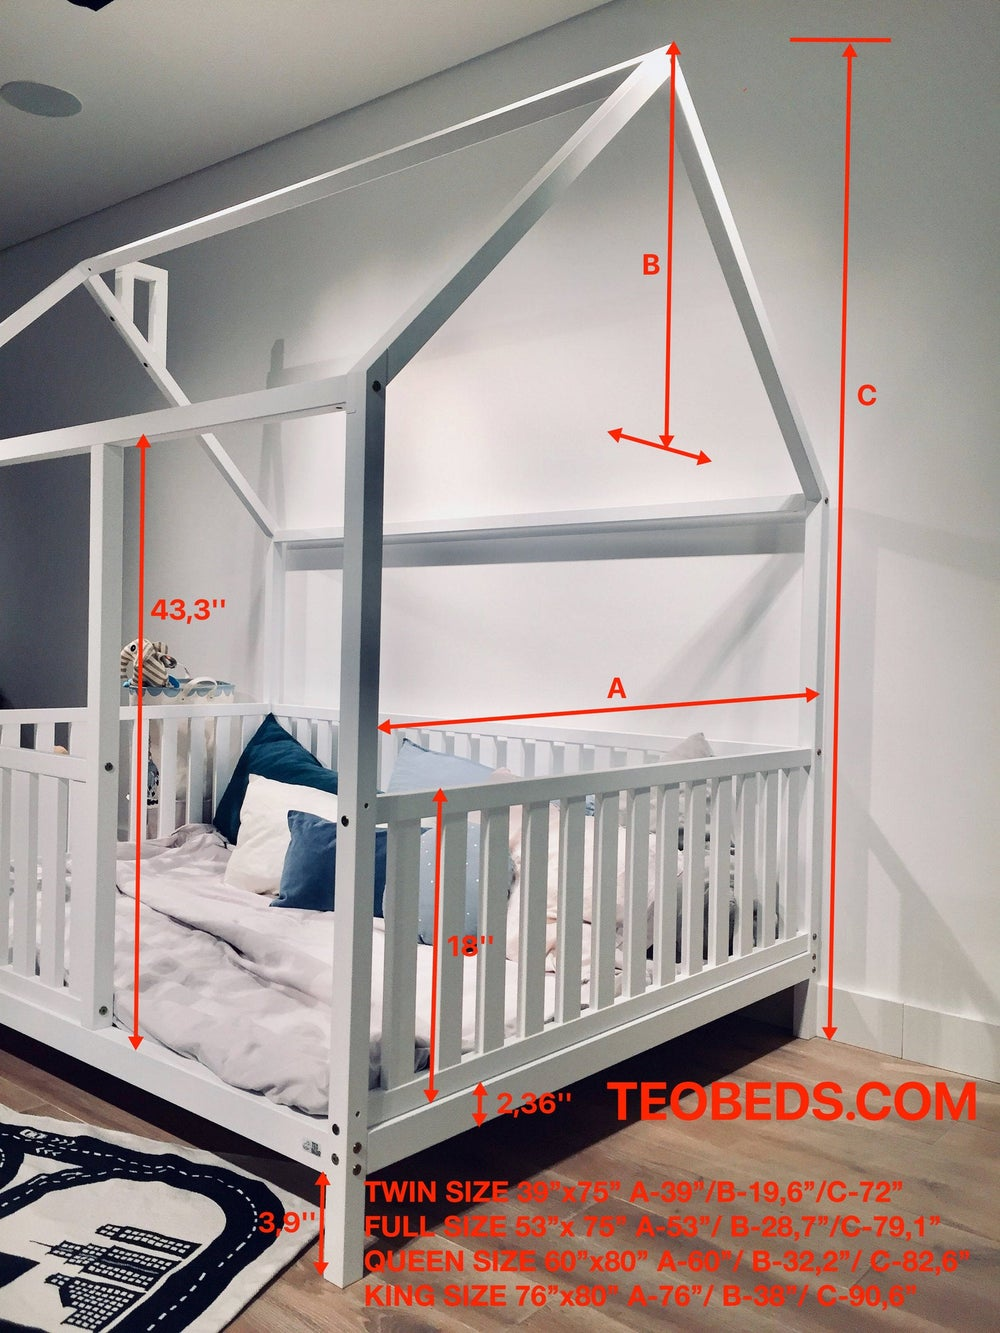 FULL Size toddler bed 53''x75'' with bed rails Teo Beds' FREE SHIPPING